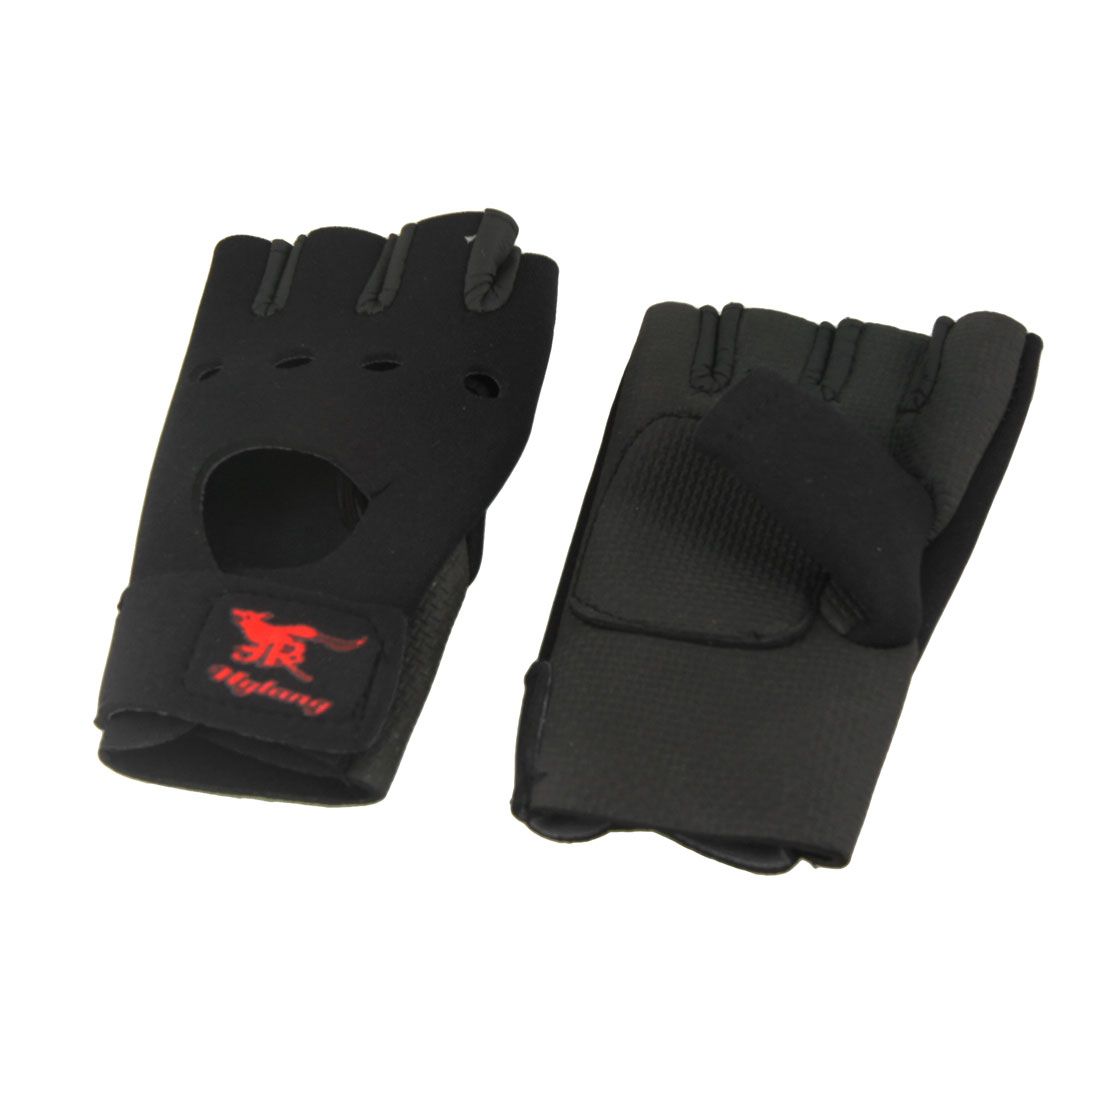 Adults Stretchy Half Finger Rubber Palm Sports Gloves Black Pair